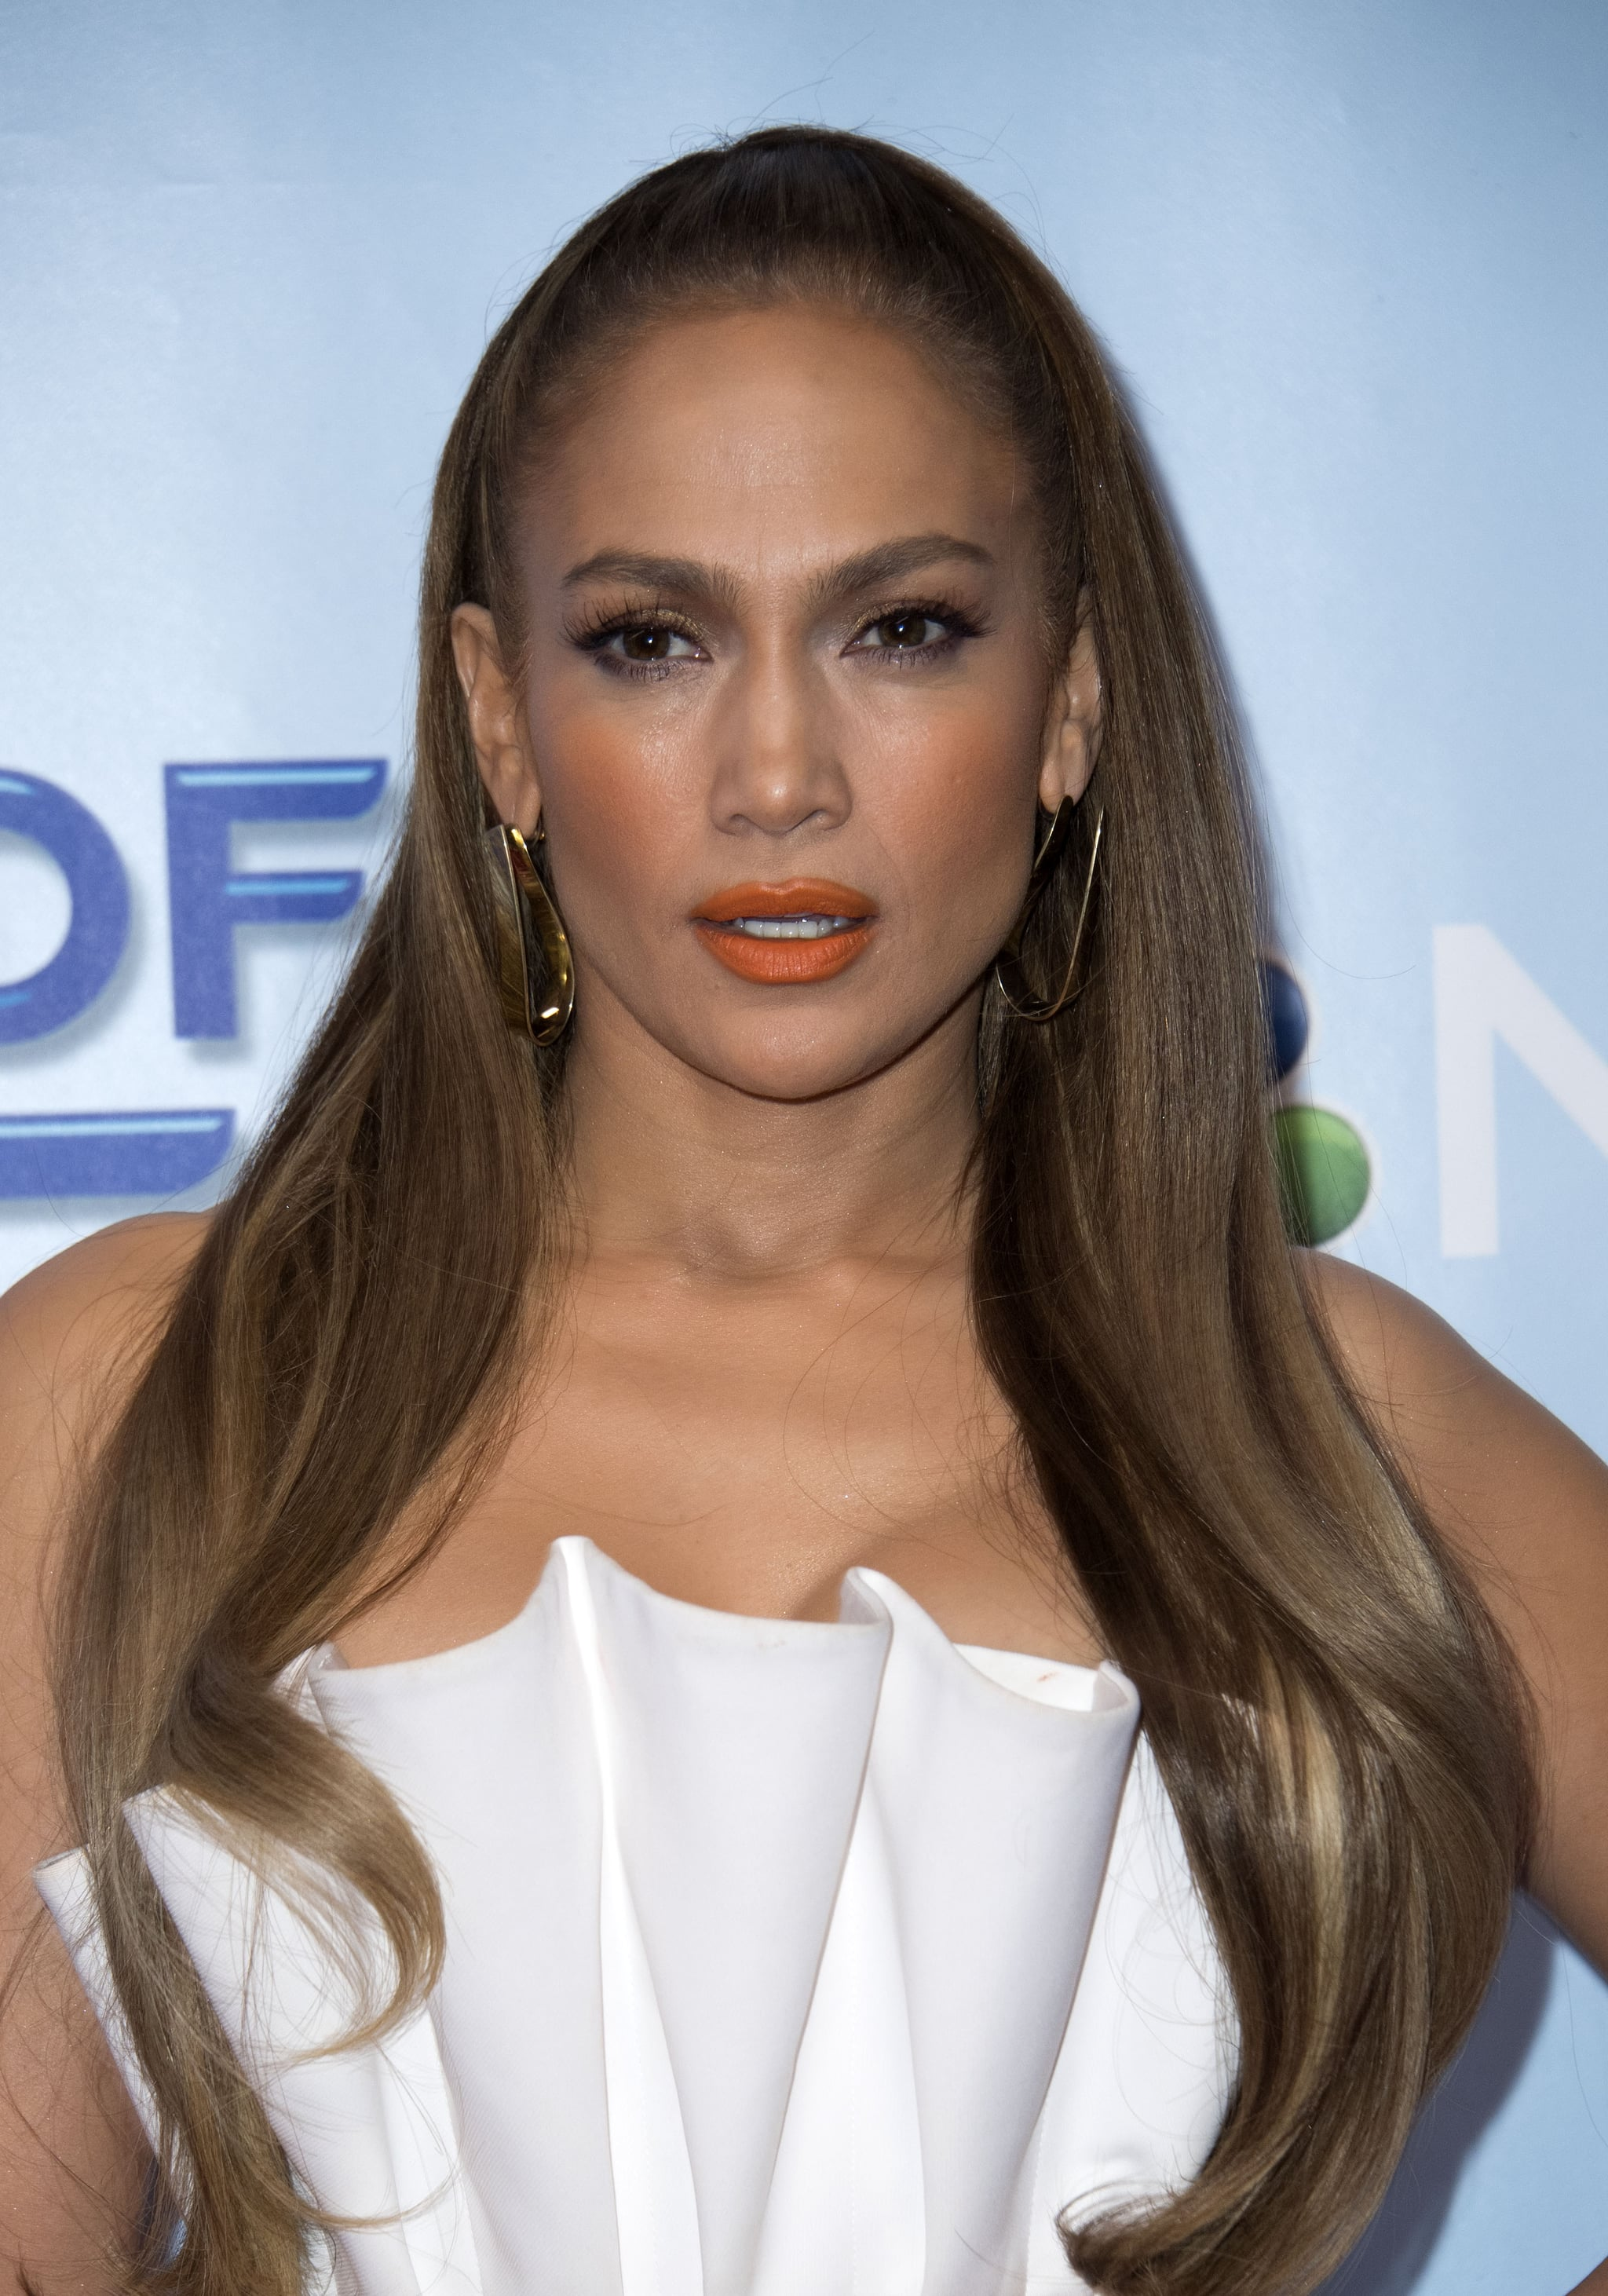 Singer and judge Jennifer Lopez attends the NBC Universal